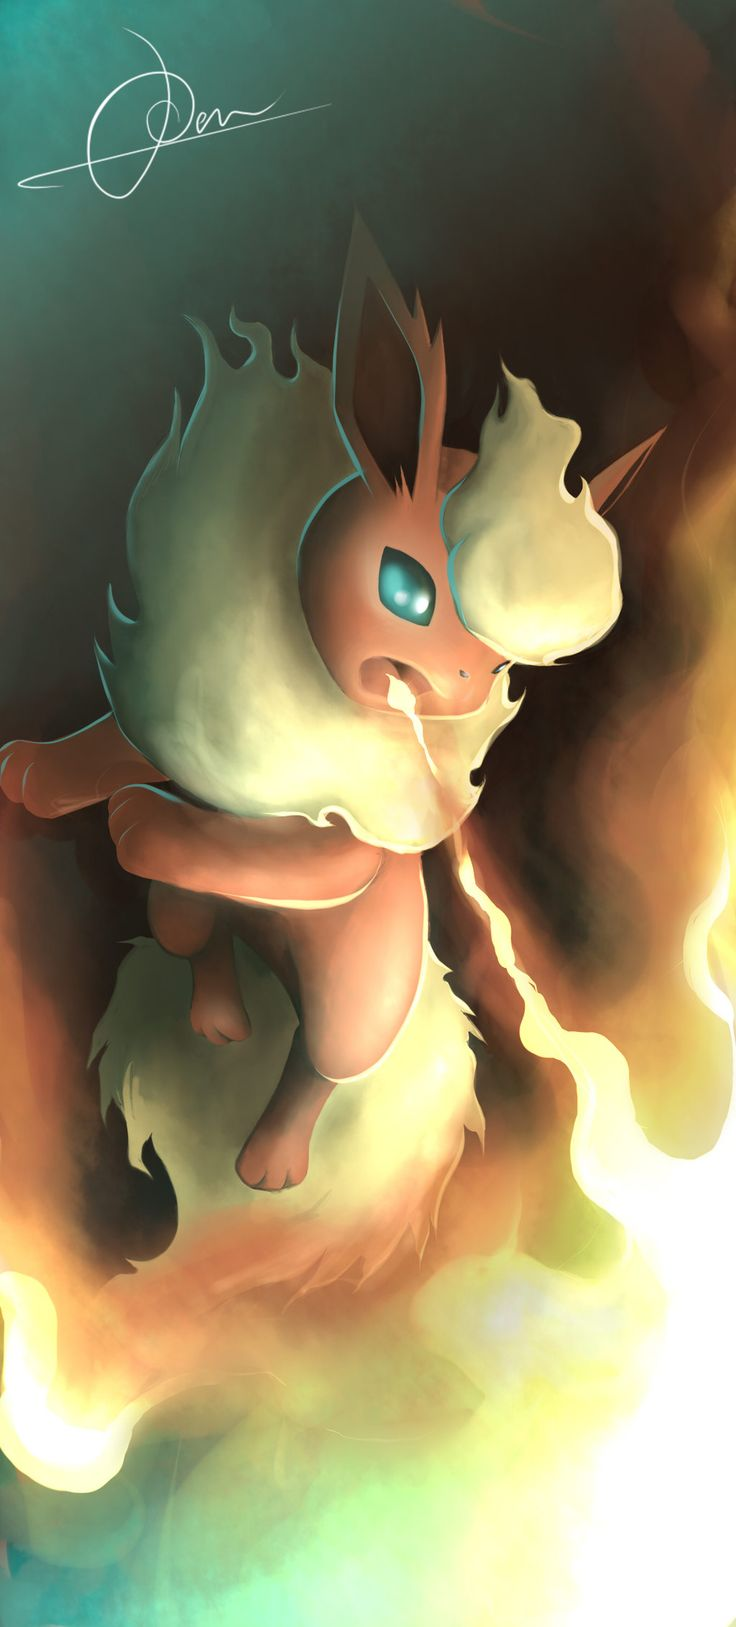 Burn it all down! The flame has arrived! by VulcanusKnight.deviantart.com on @deviantART (Flareon)